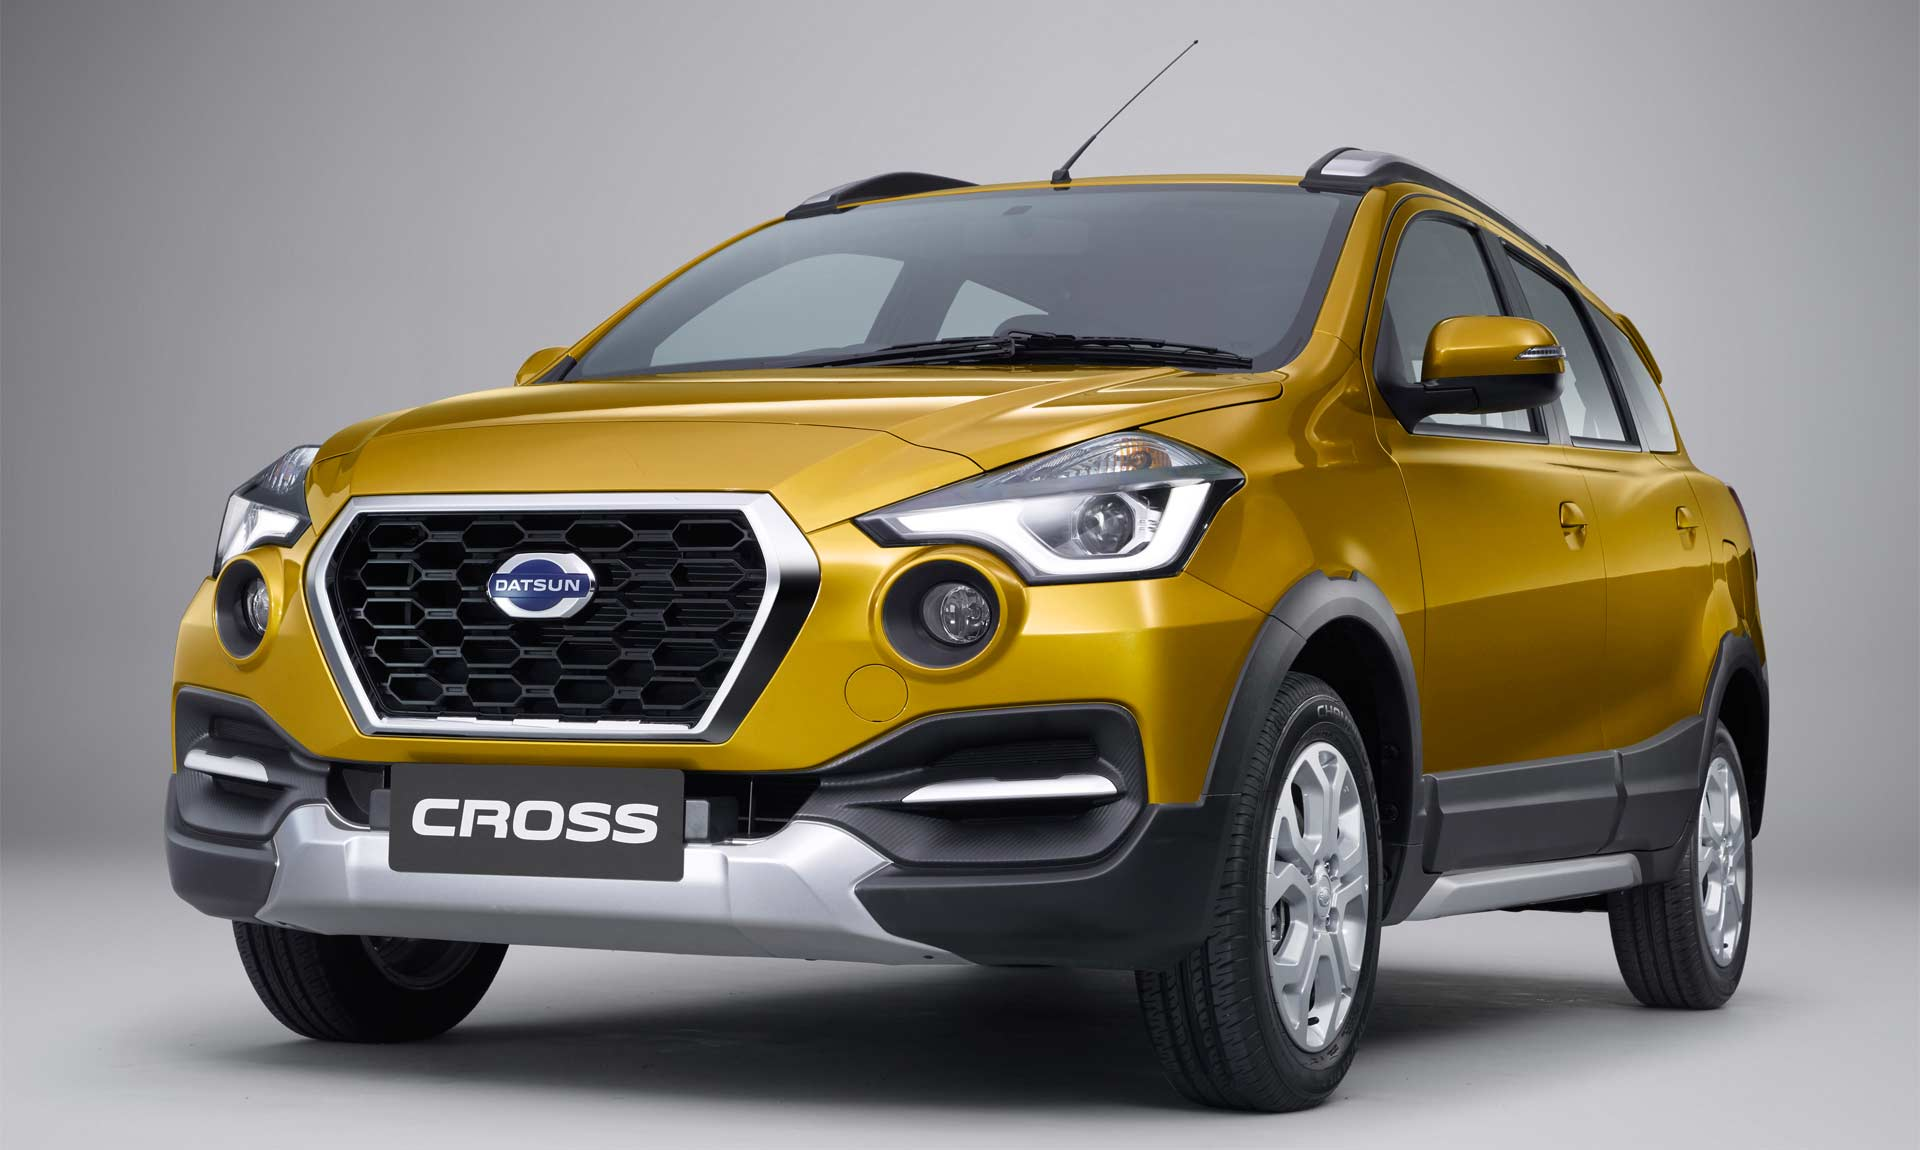 2018-Datsun-Cross